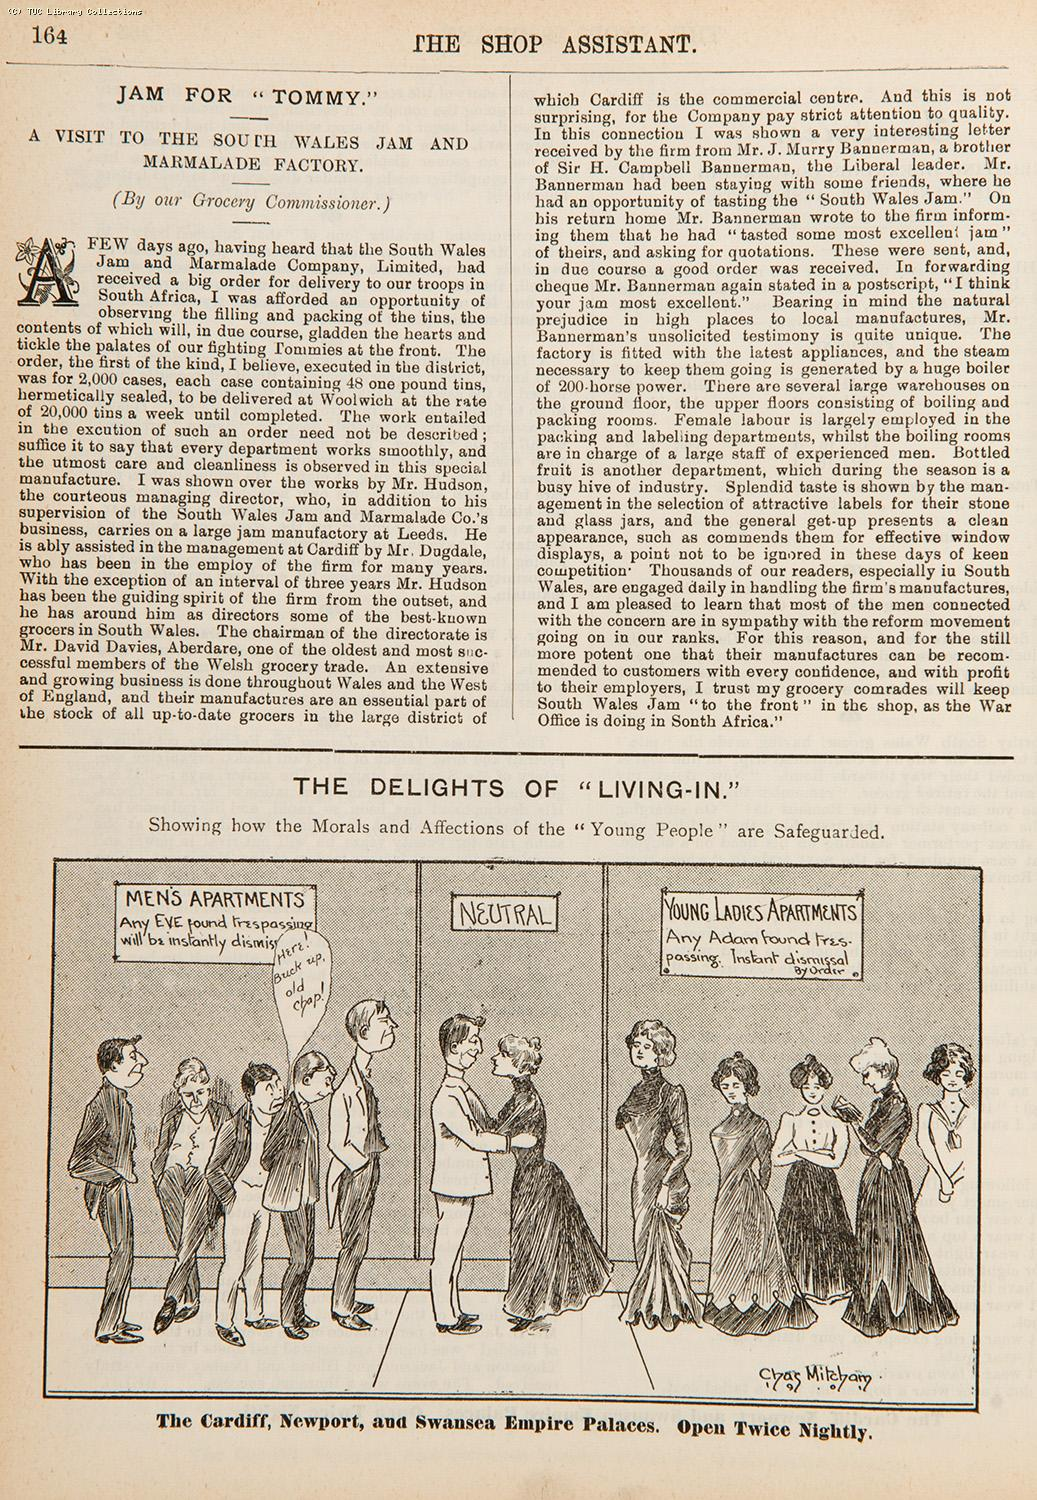 The delights of 'living-in', 1901